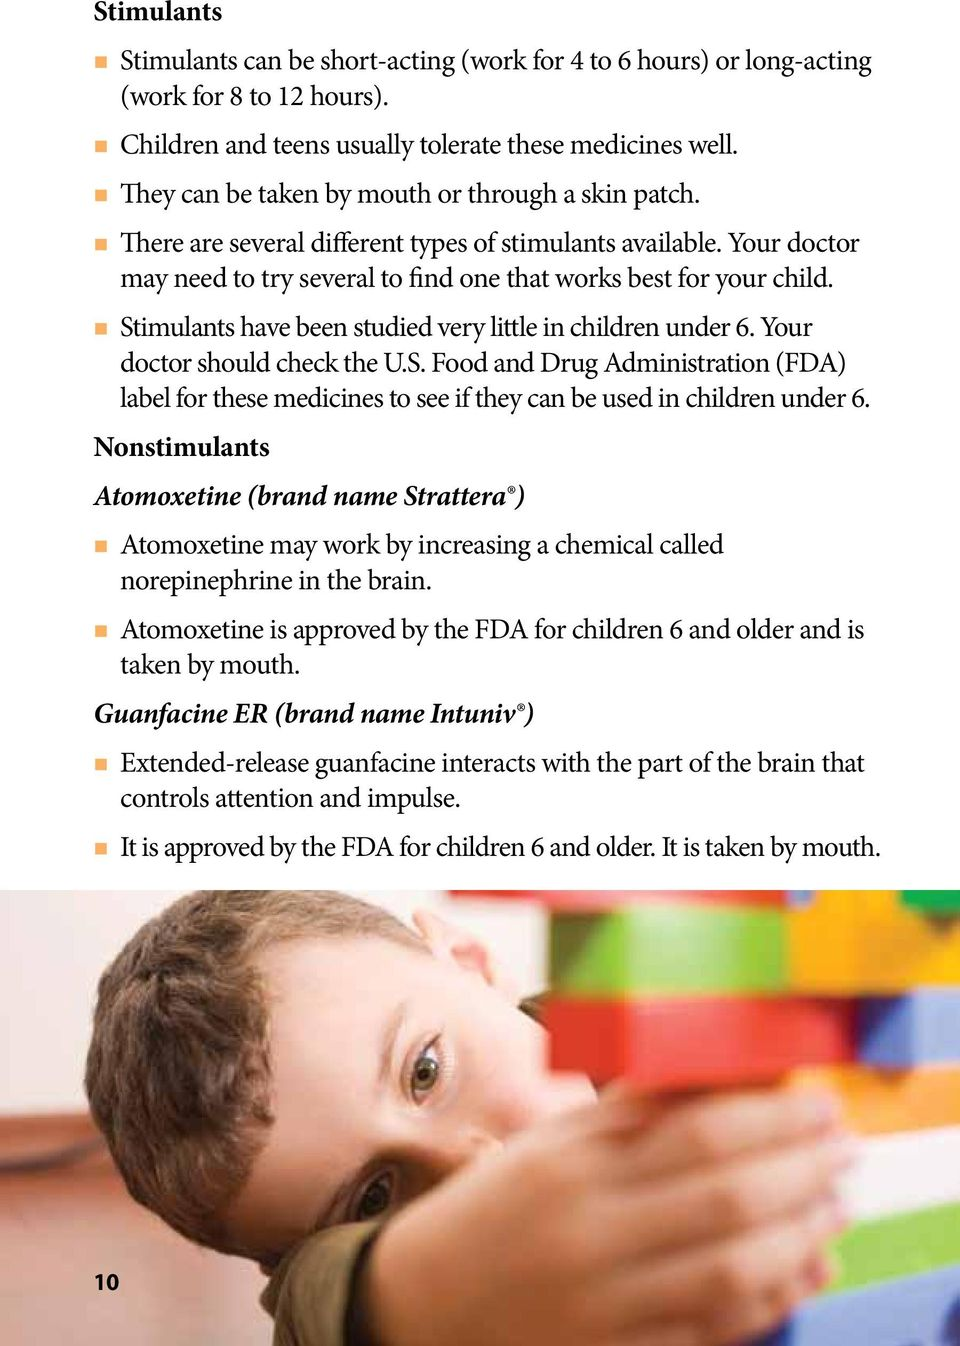 Stimulants have been studied very little in children under 6. Your doctor should check the U.S. Food and Drug Administration (FDA) label for these medicines to see if they can be used in children under 6.